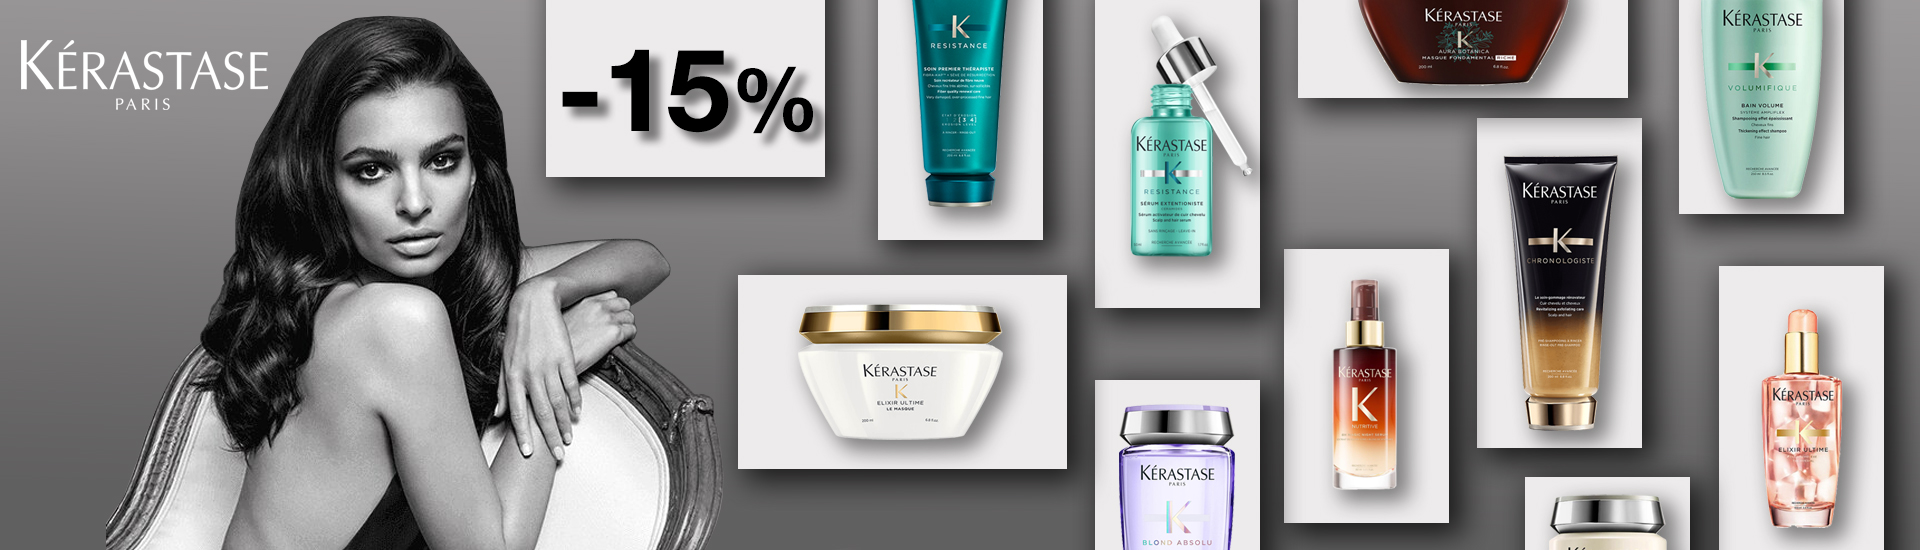 kerastase no limit